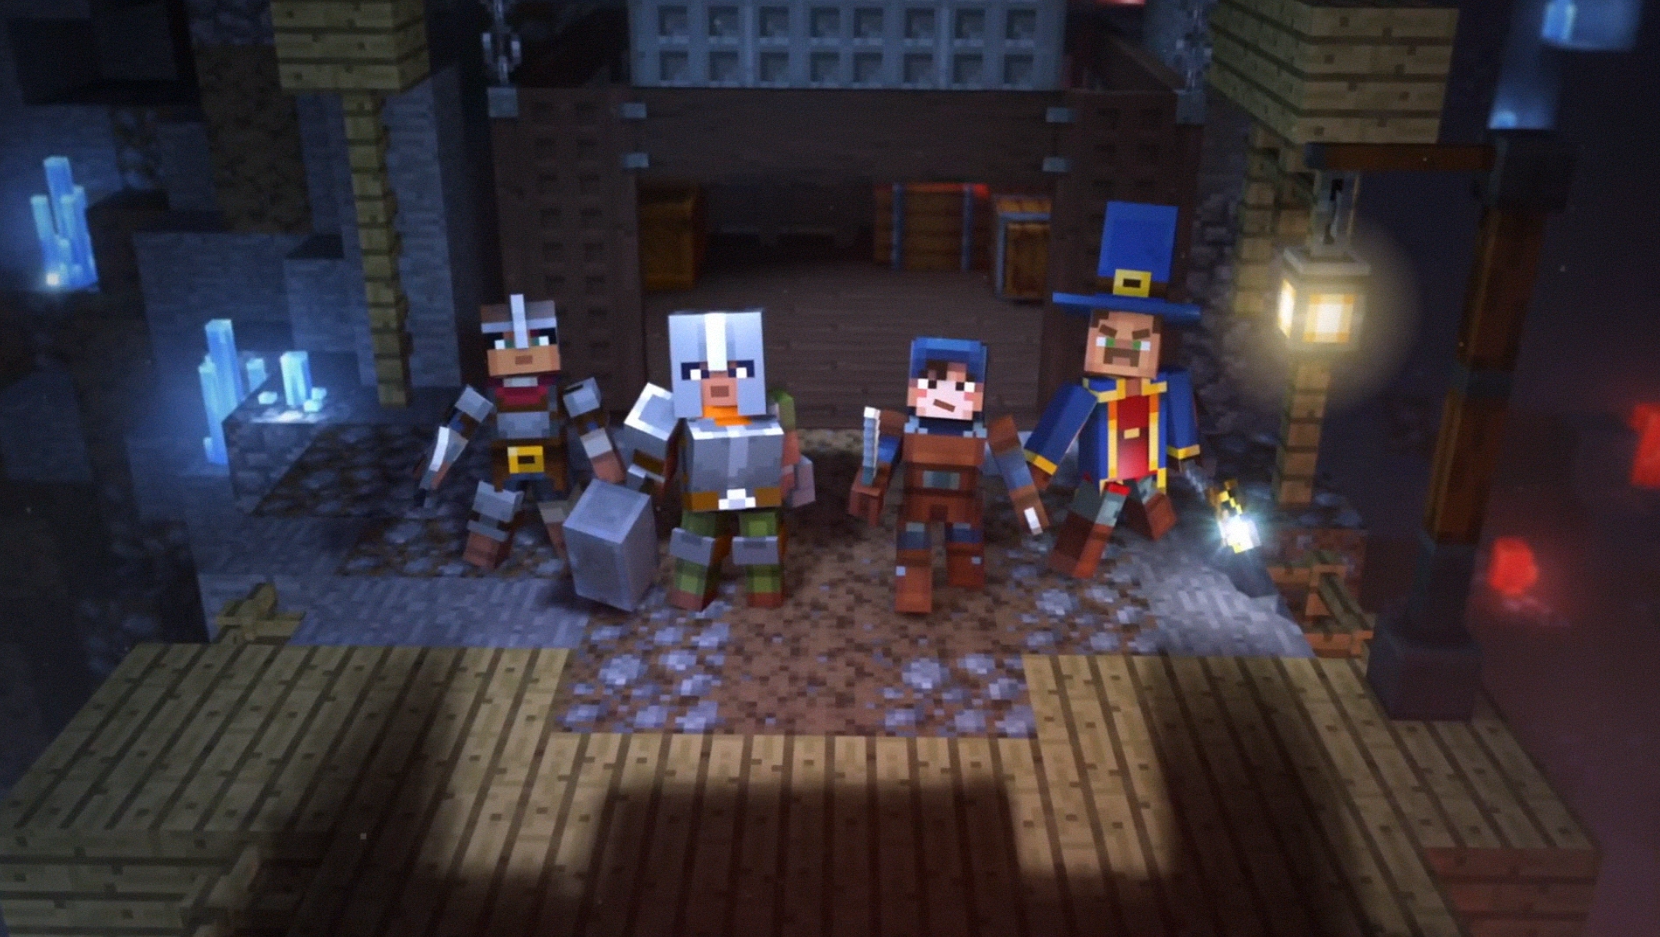 Minecraft: Dungeons Is The New Game Set In The Minecraft Universe